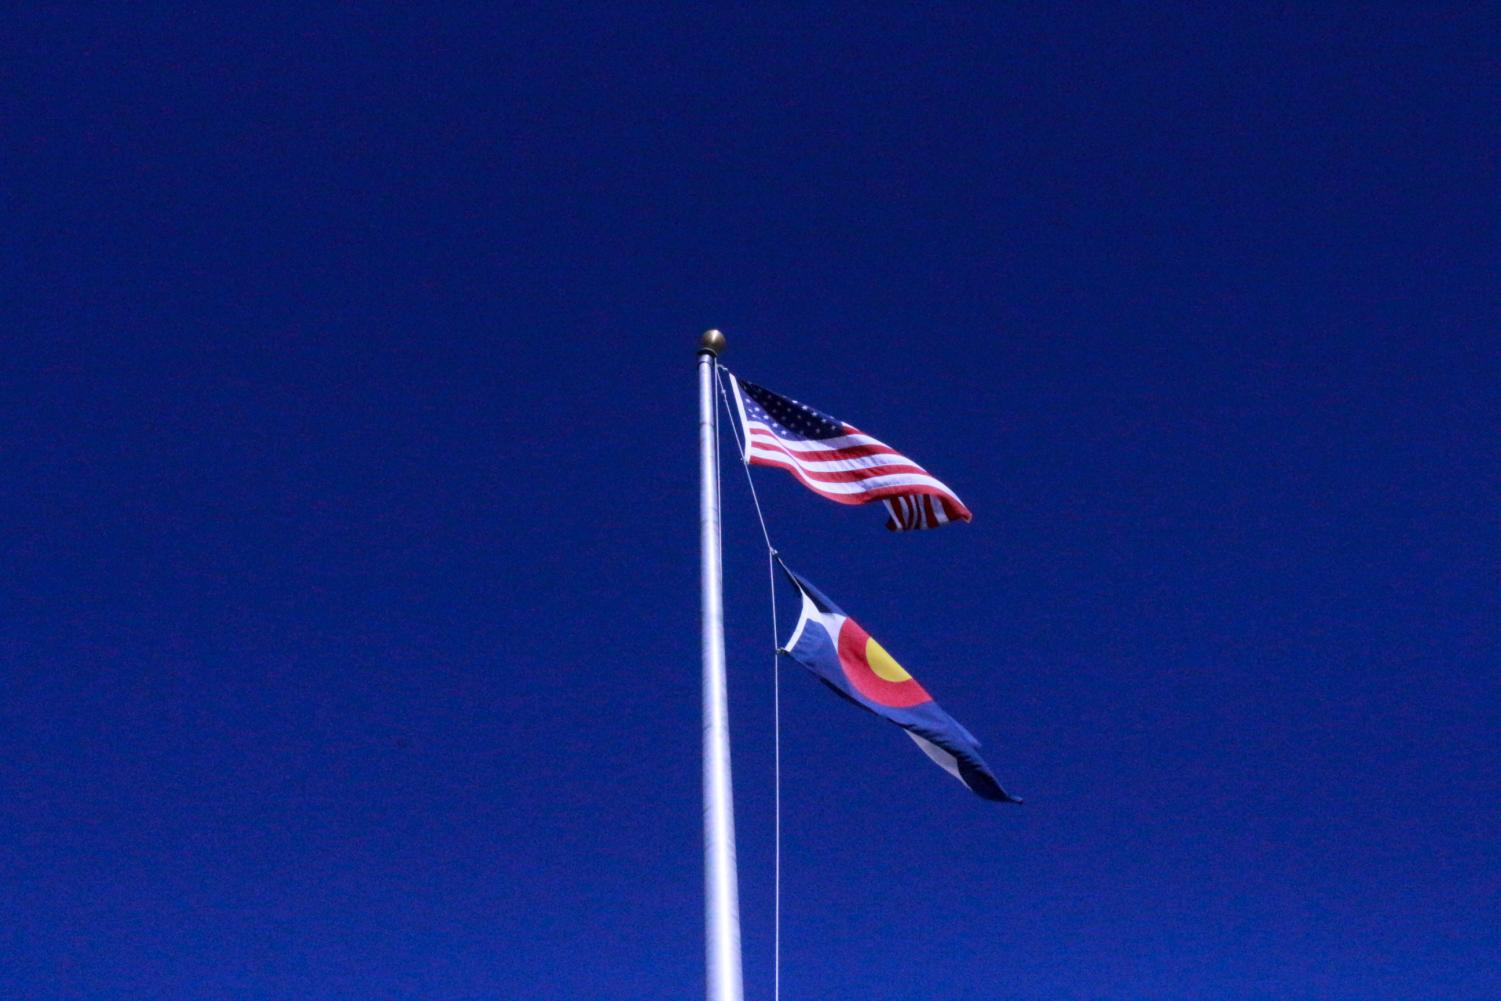 Feature Photo by: Dylan Tressider - The American flag in front of RHS. The American flag is often seen as a symbol of freedom for oppressed people around the world.